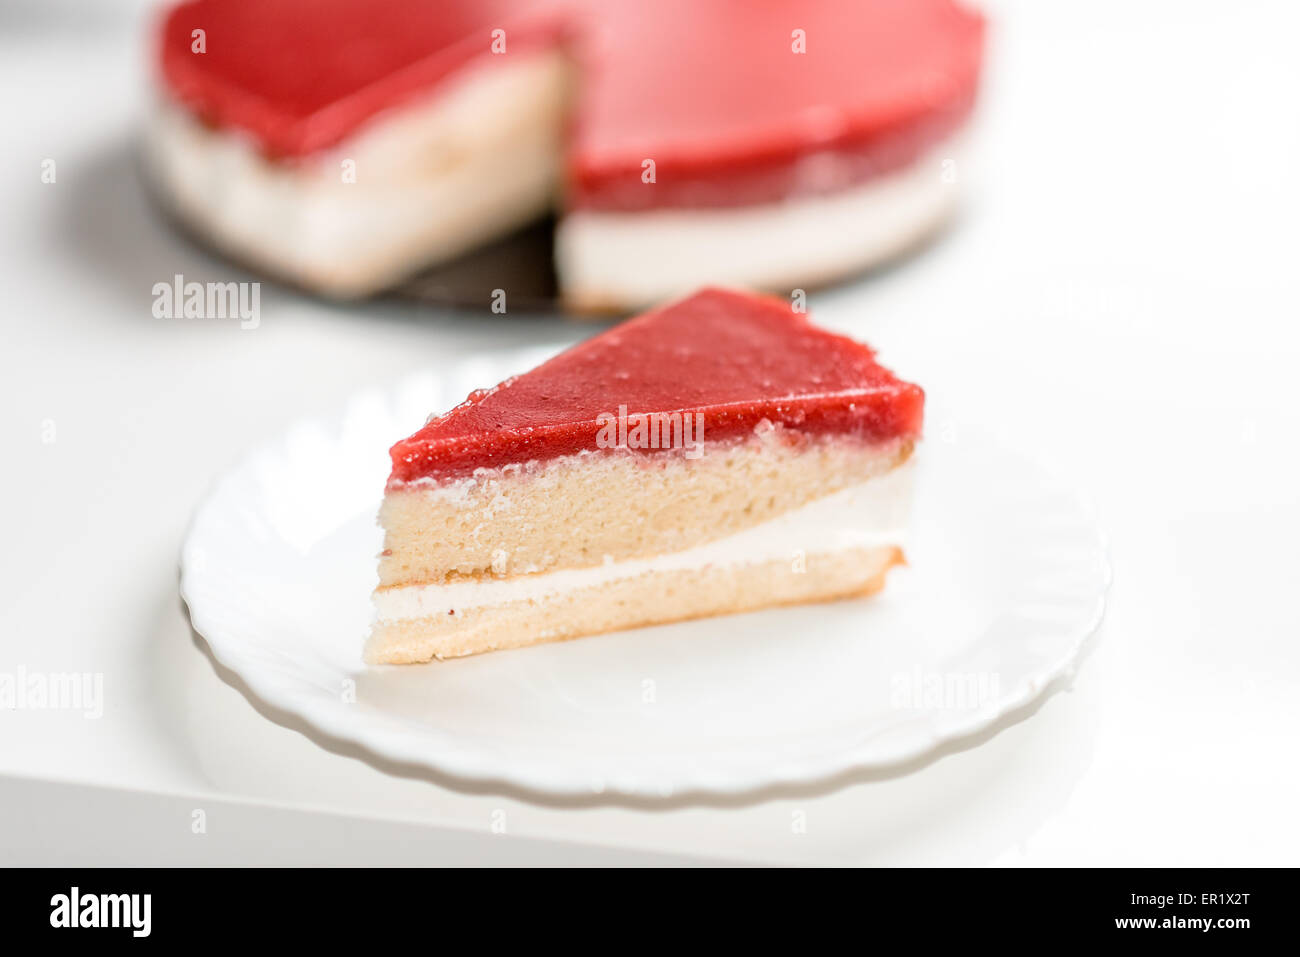 Home made cake with fresh strawberry, white chocolate and cottage cheese - Stock Image